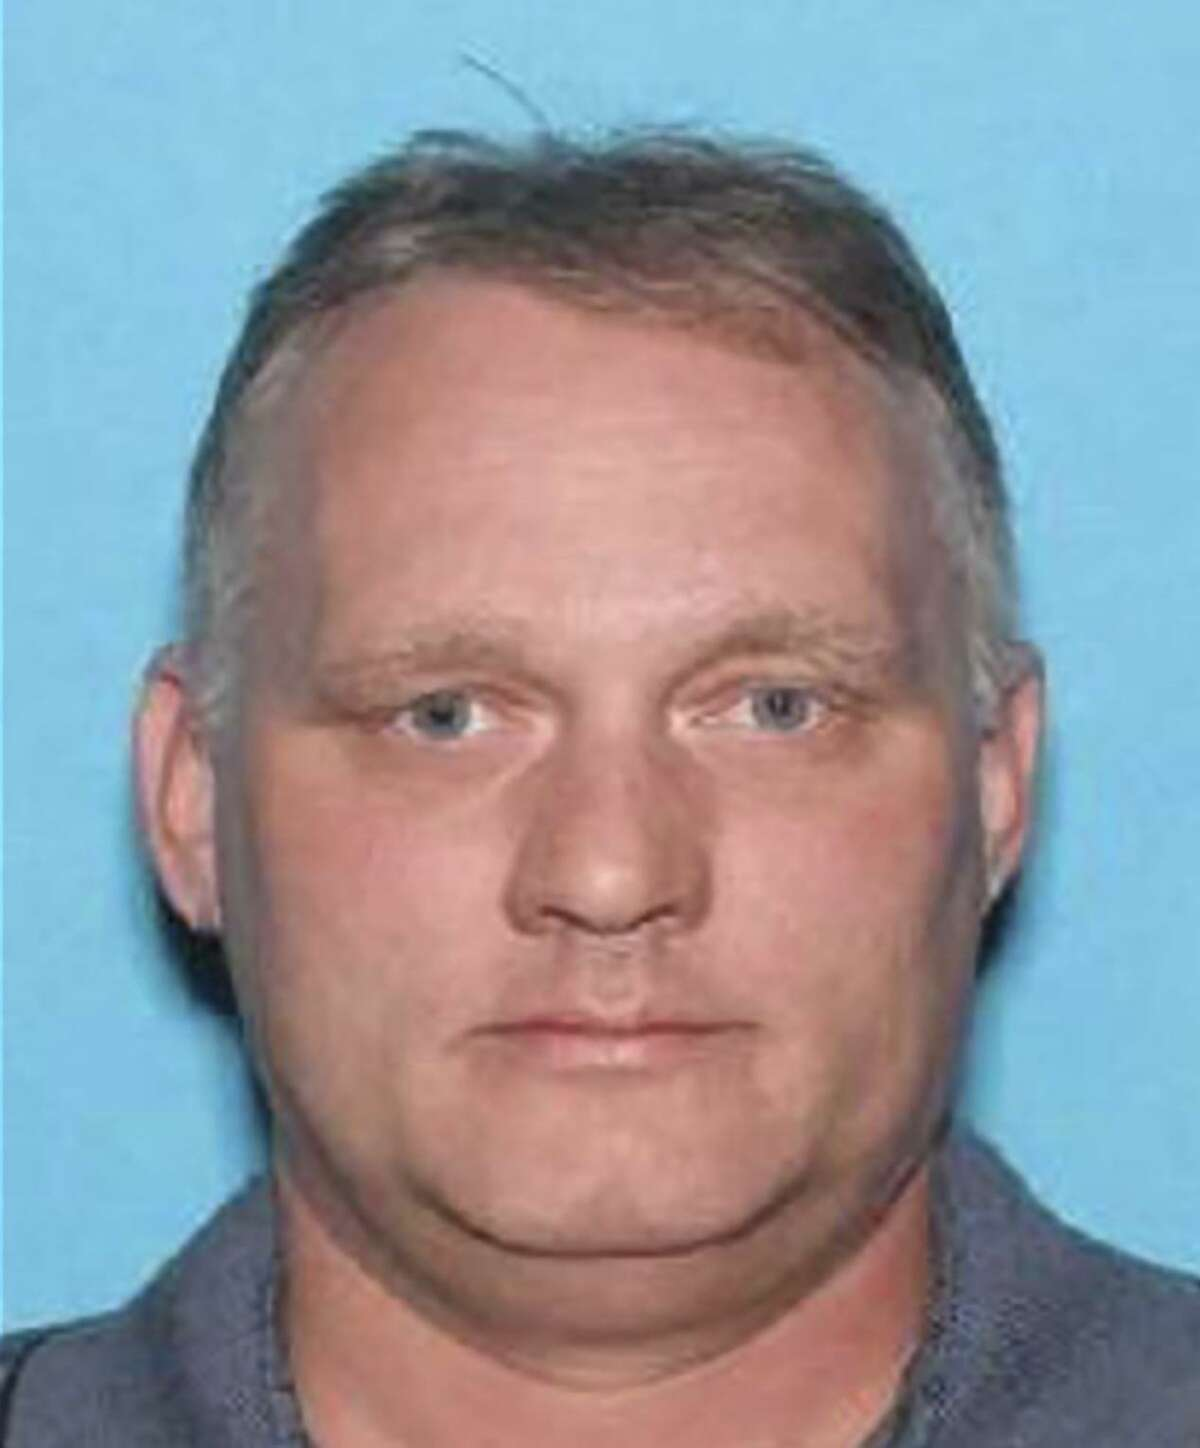 """A photo provided by the Pennsylvania Department of Motor Vehicles shows Robert Bowers, who is accused a shooting rampage that left 11 people dead at the Tree of Life Congregation in Pittsburgh. Bowers appeared at a federal courthouse in downtown Pittsburgh in a wheelchair on Oct. 29, 2018. The judge listed an overview of the 29 criminal charges against him and asked him if he understood them. ?""""Yes,?"""" he replied. (Pennsylvania Department of Motor Vehicles via The New York Times) -- FOR EDITORIAL USE ONLY. --"""